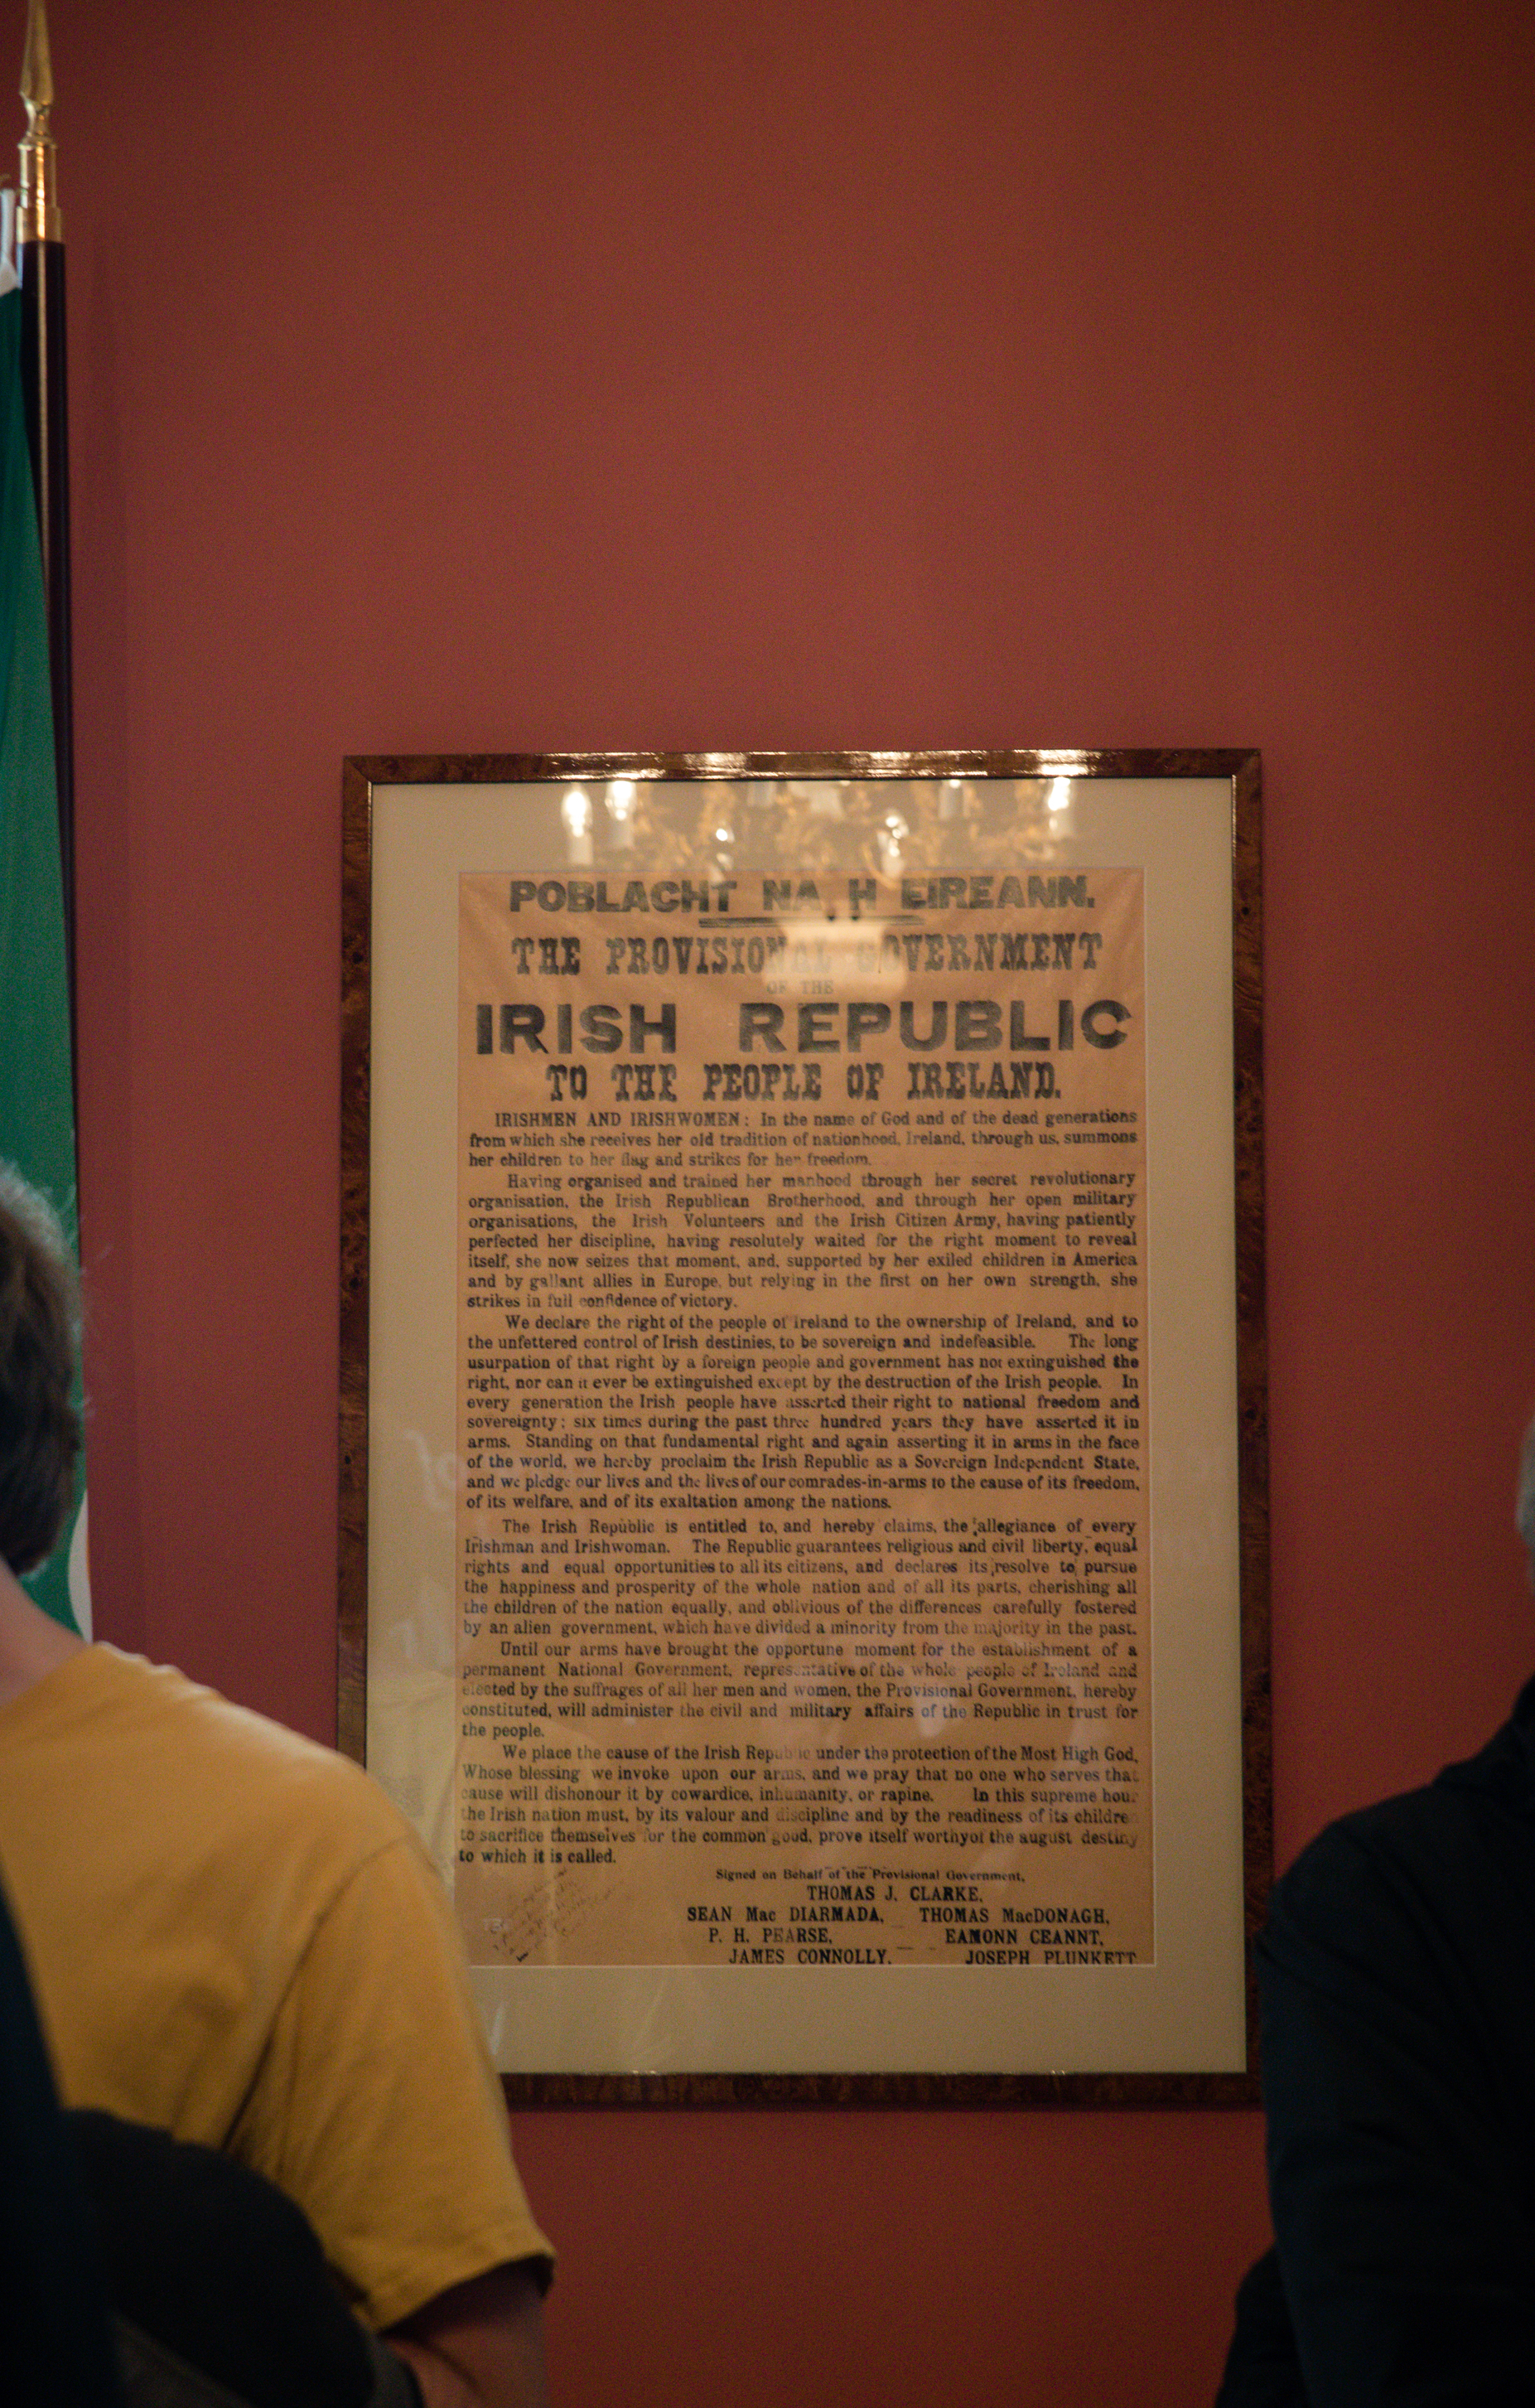 This was a picture I took in Dublin Castle of the Proclamation.